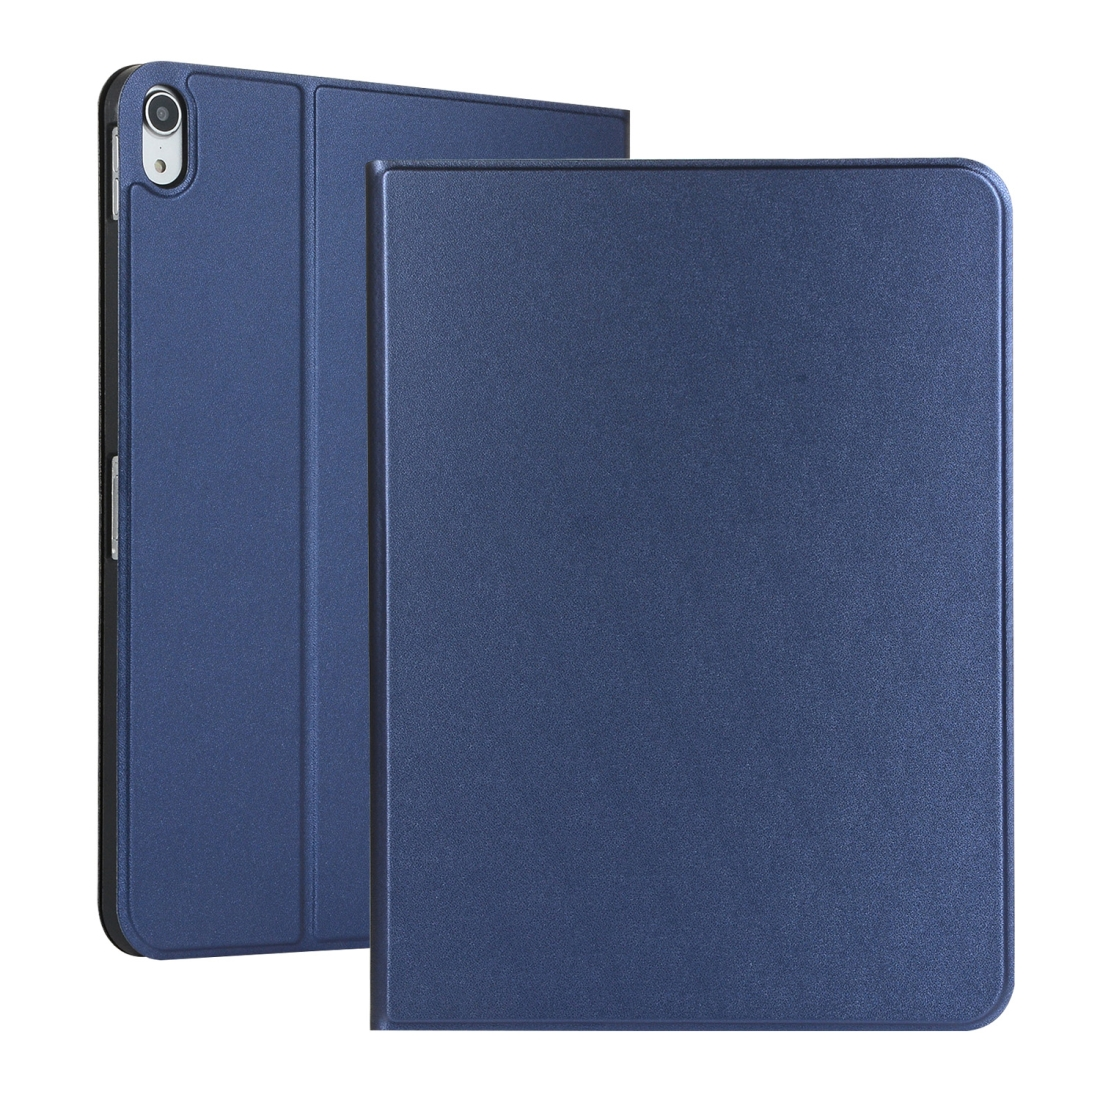 Elastic Leather iPad Pro 11 Case  with Auto Sleep, Durable Soft Shell Bottom (Dark blue)